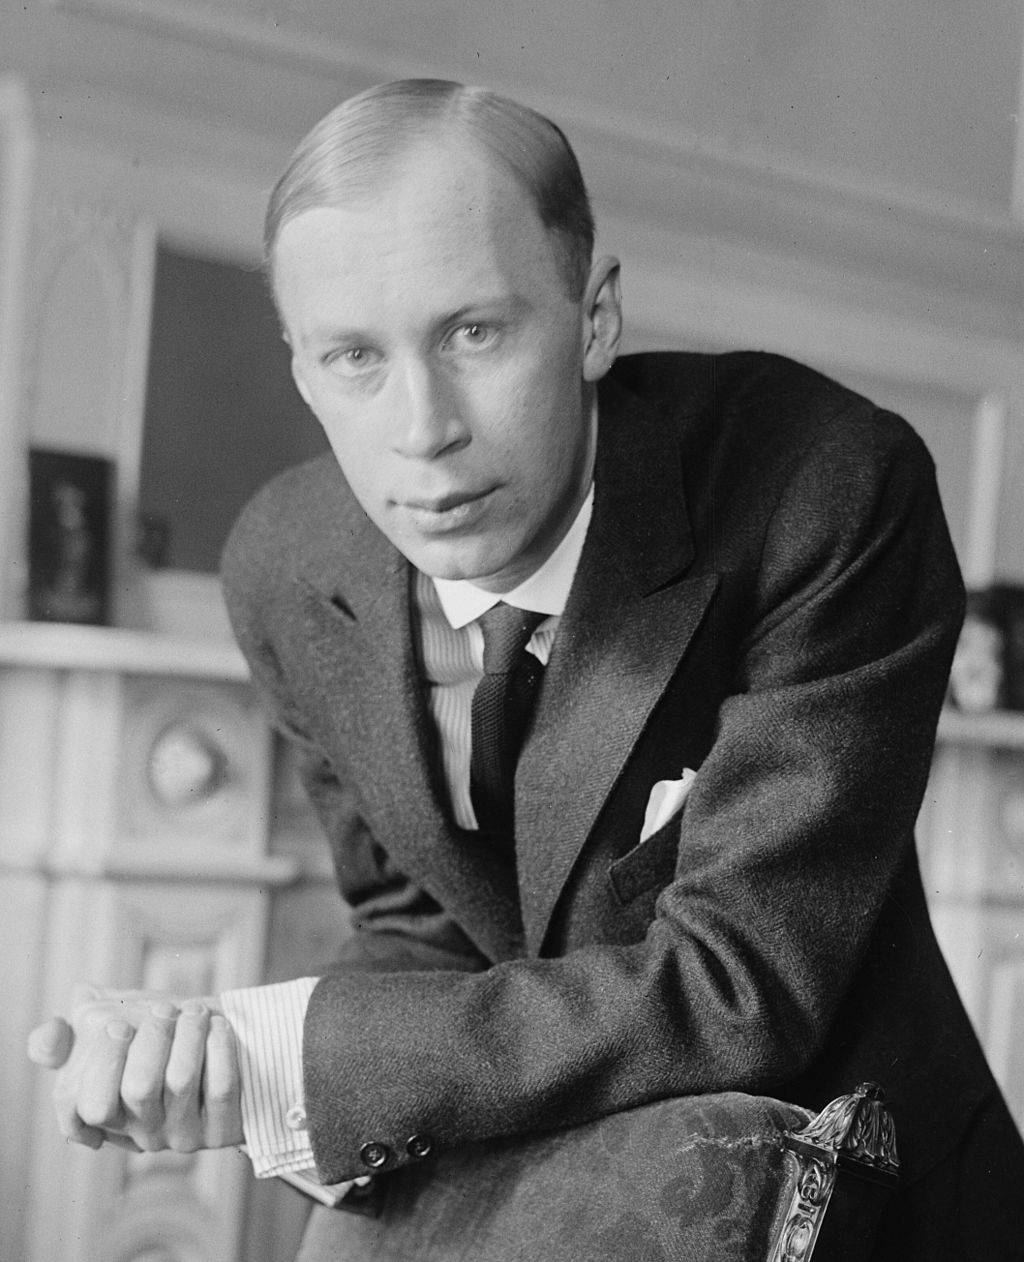 Sergei_Prokofiev_circa_1918_over_Chair_Bain.jpg